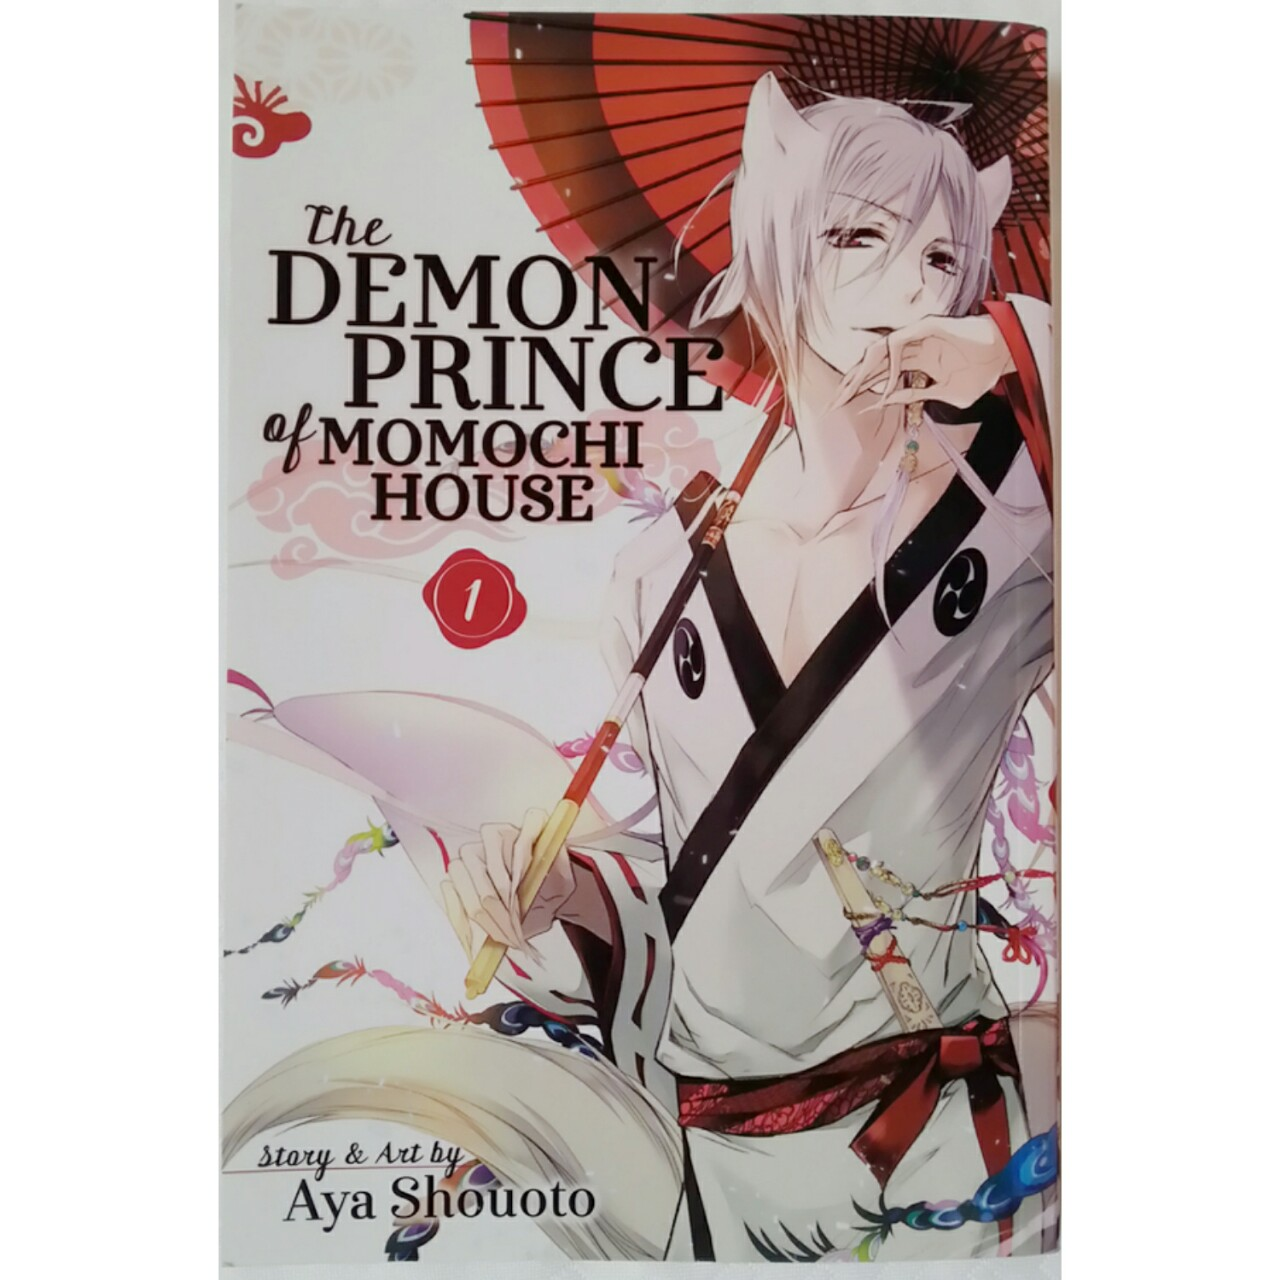 The Demon Prince of Momochi House Volume 1 Like-new    - Depop